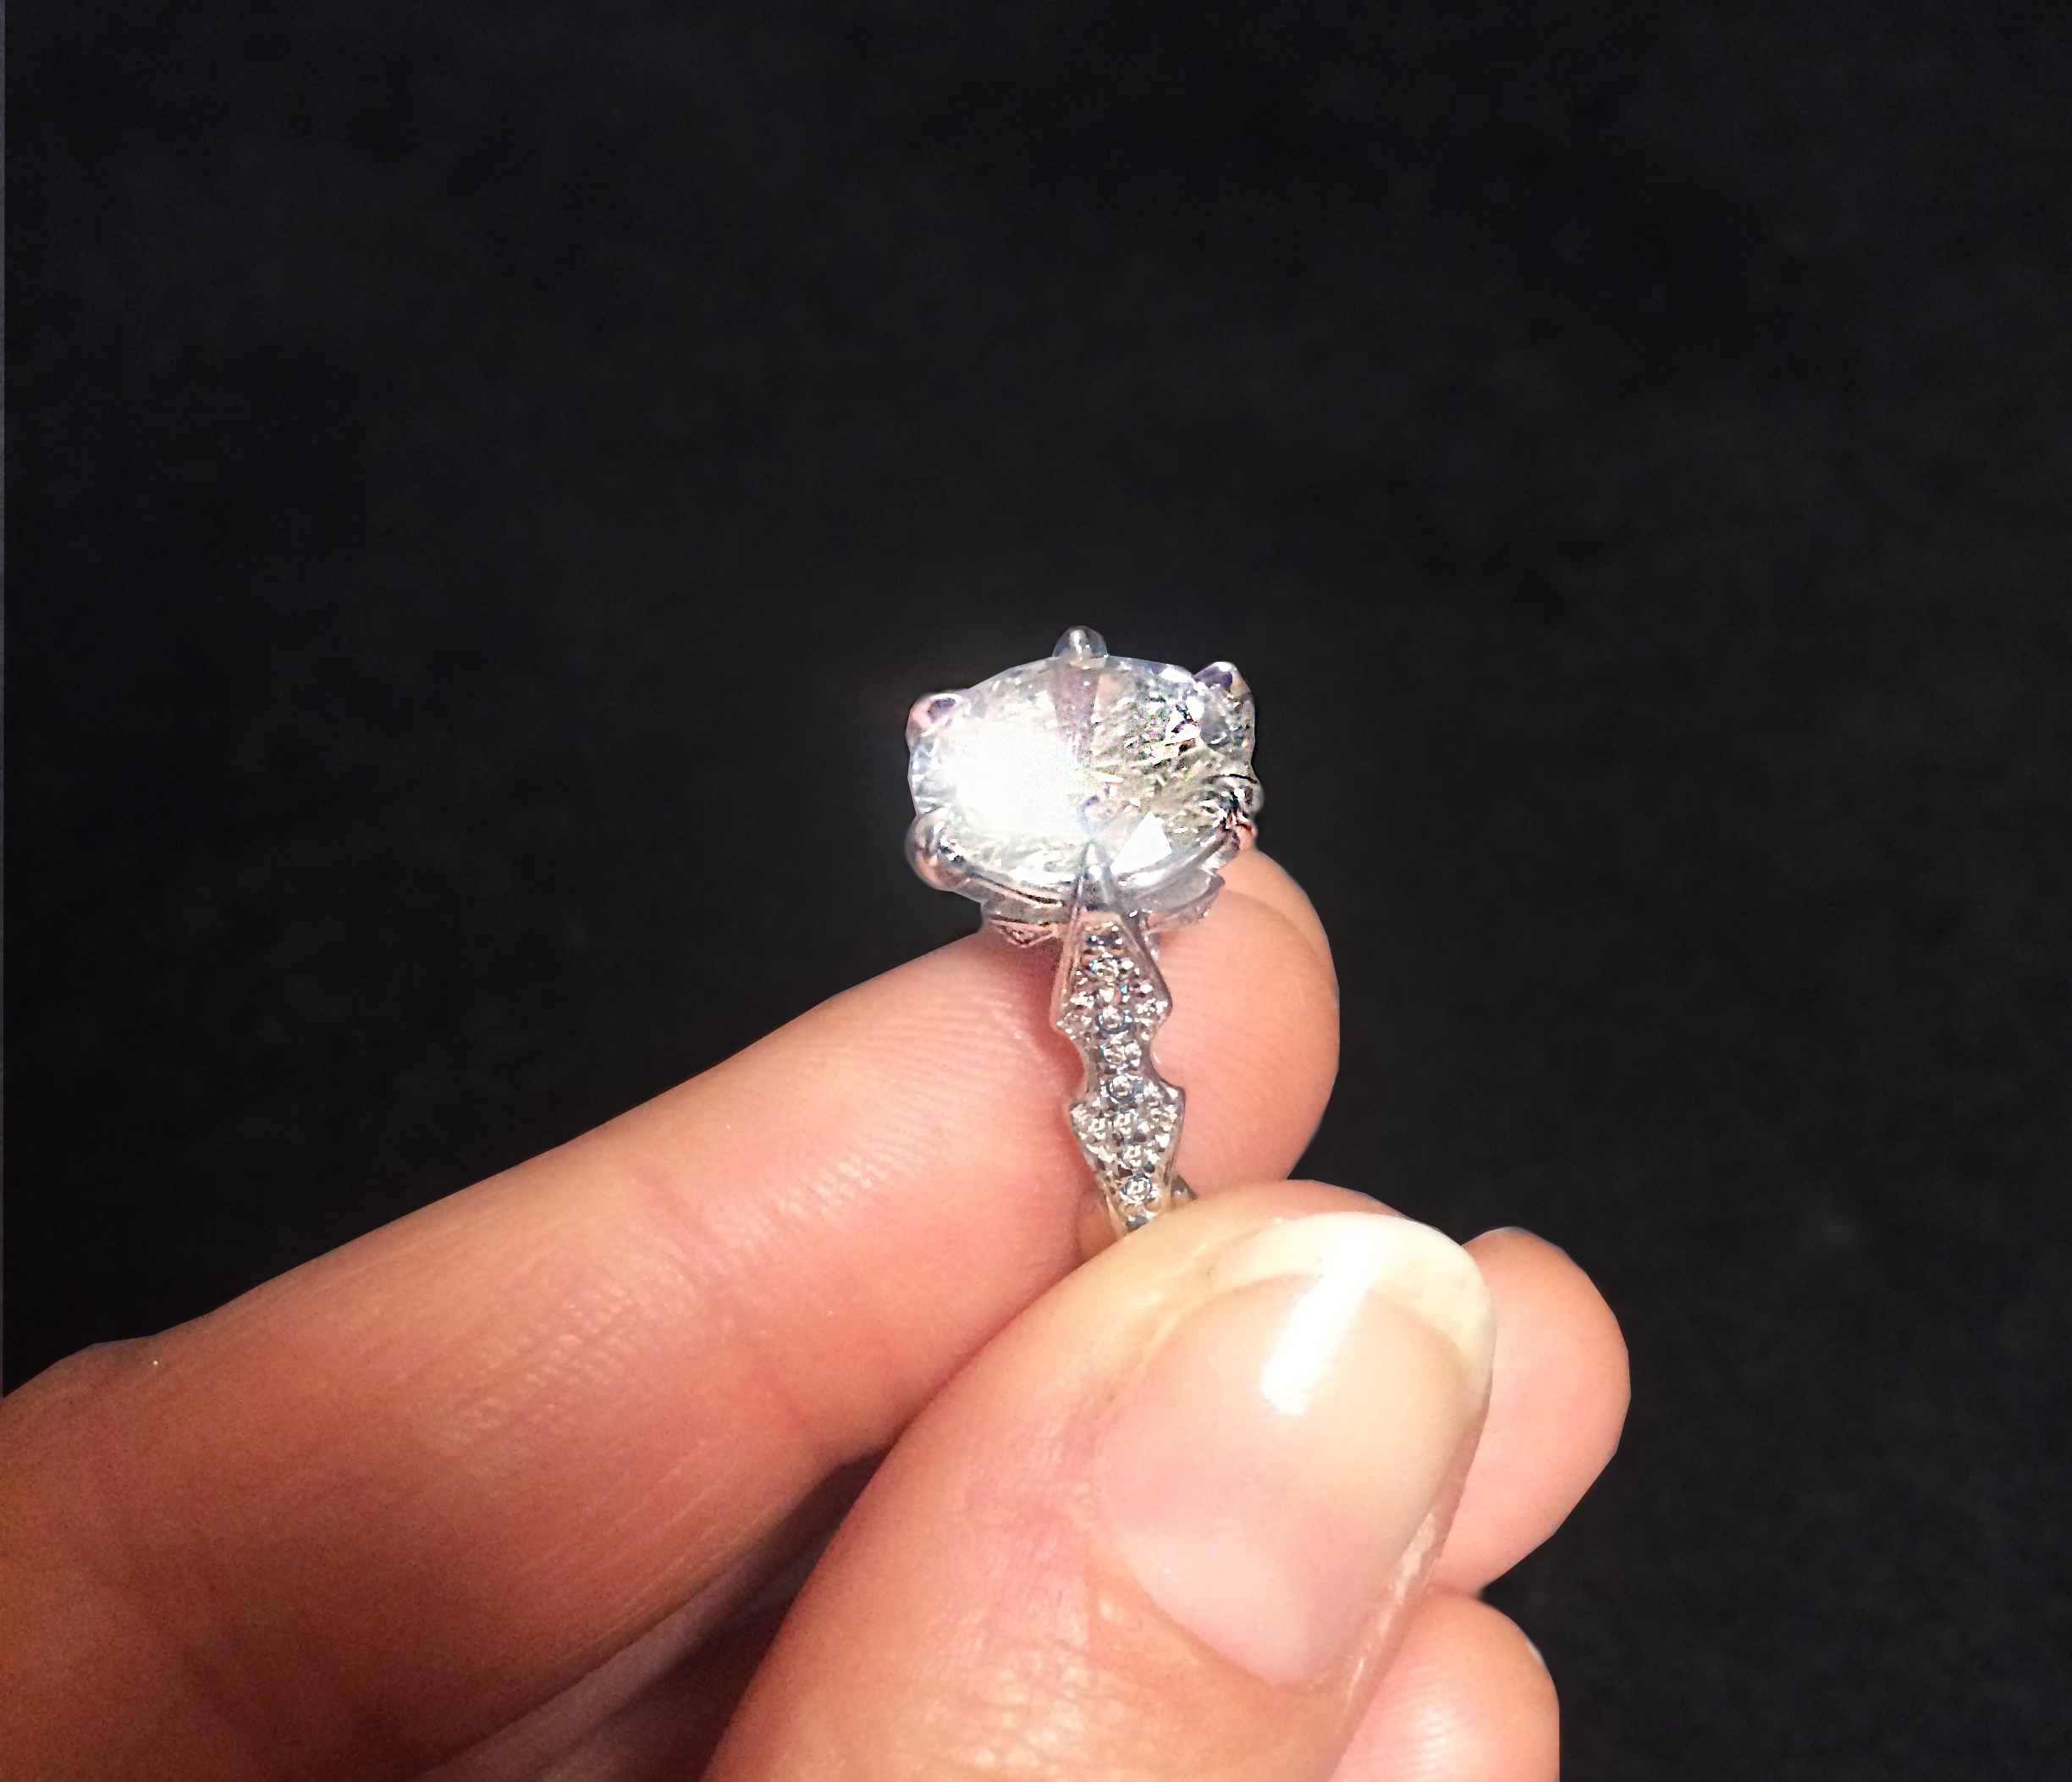 5 carats GIA certificate diamond set in platinum with white diamonds from private collection, one of a kind